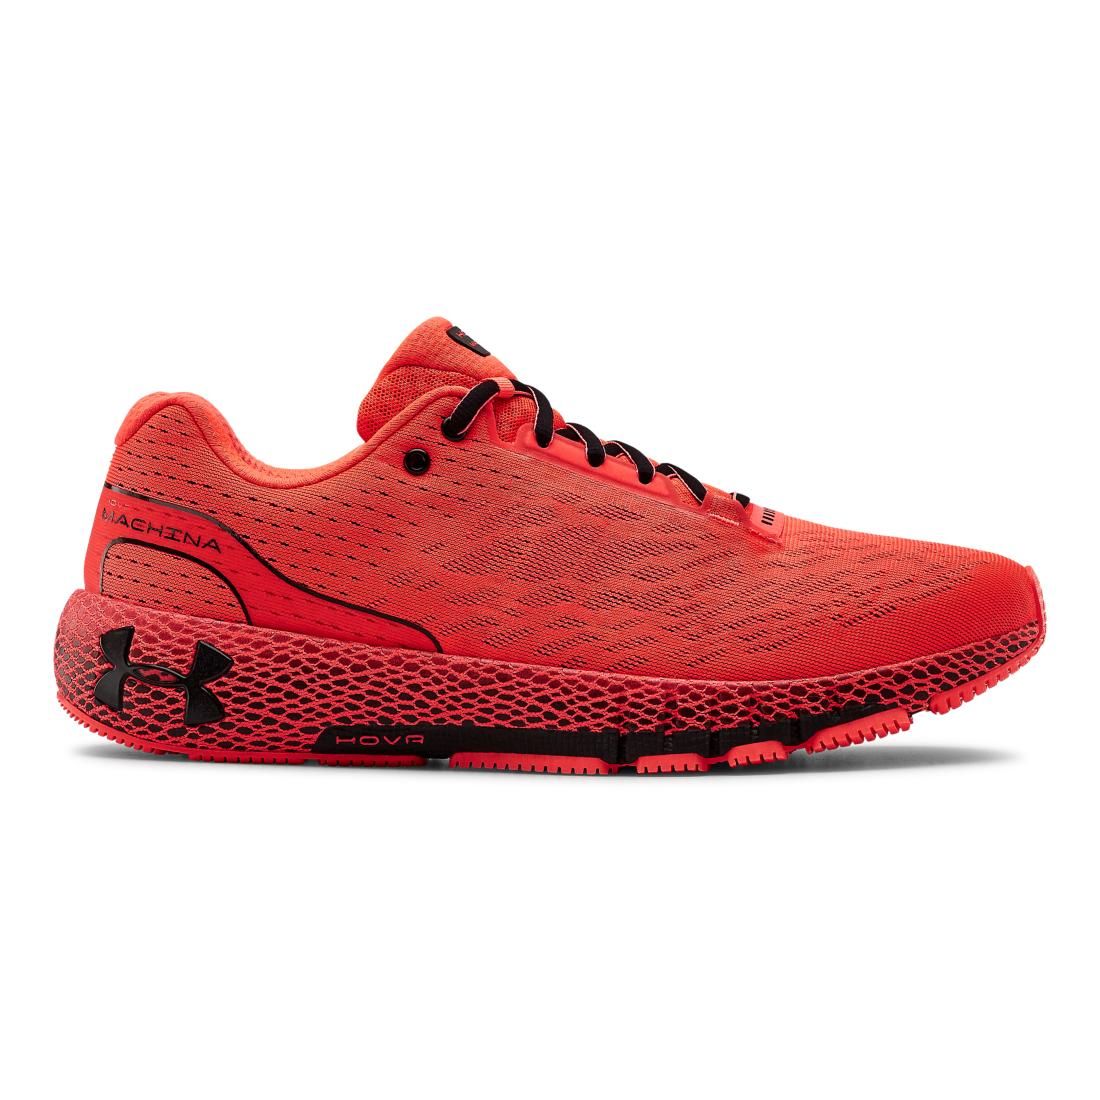 Under Armour Hovr Machina - Red - Man